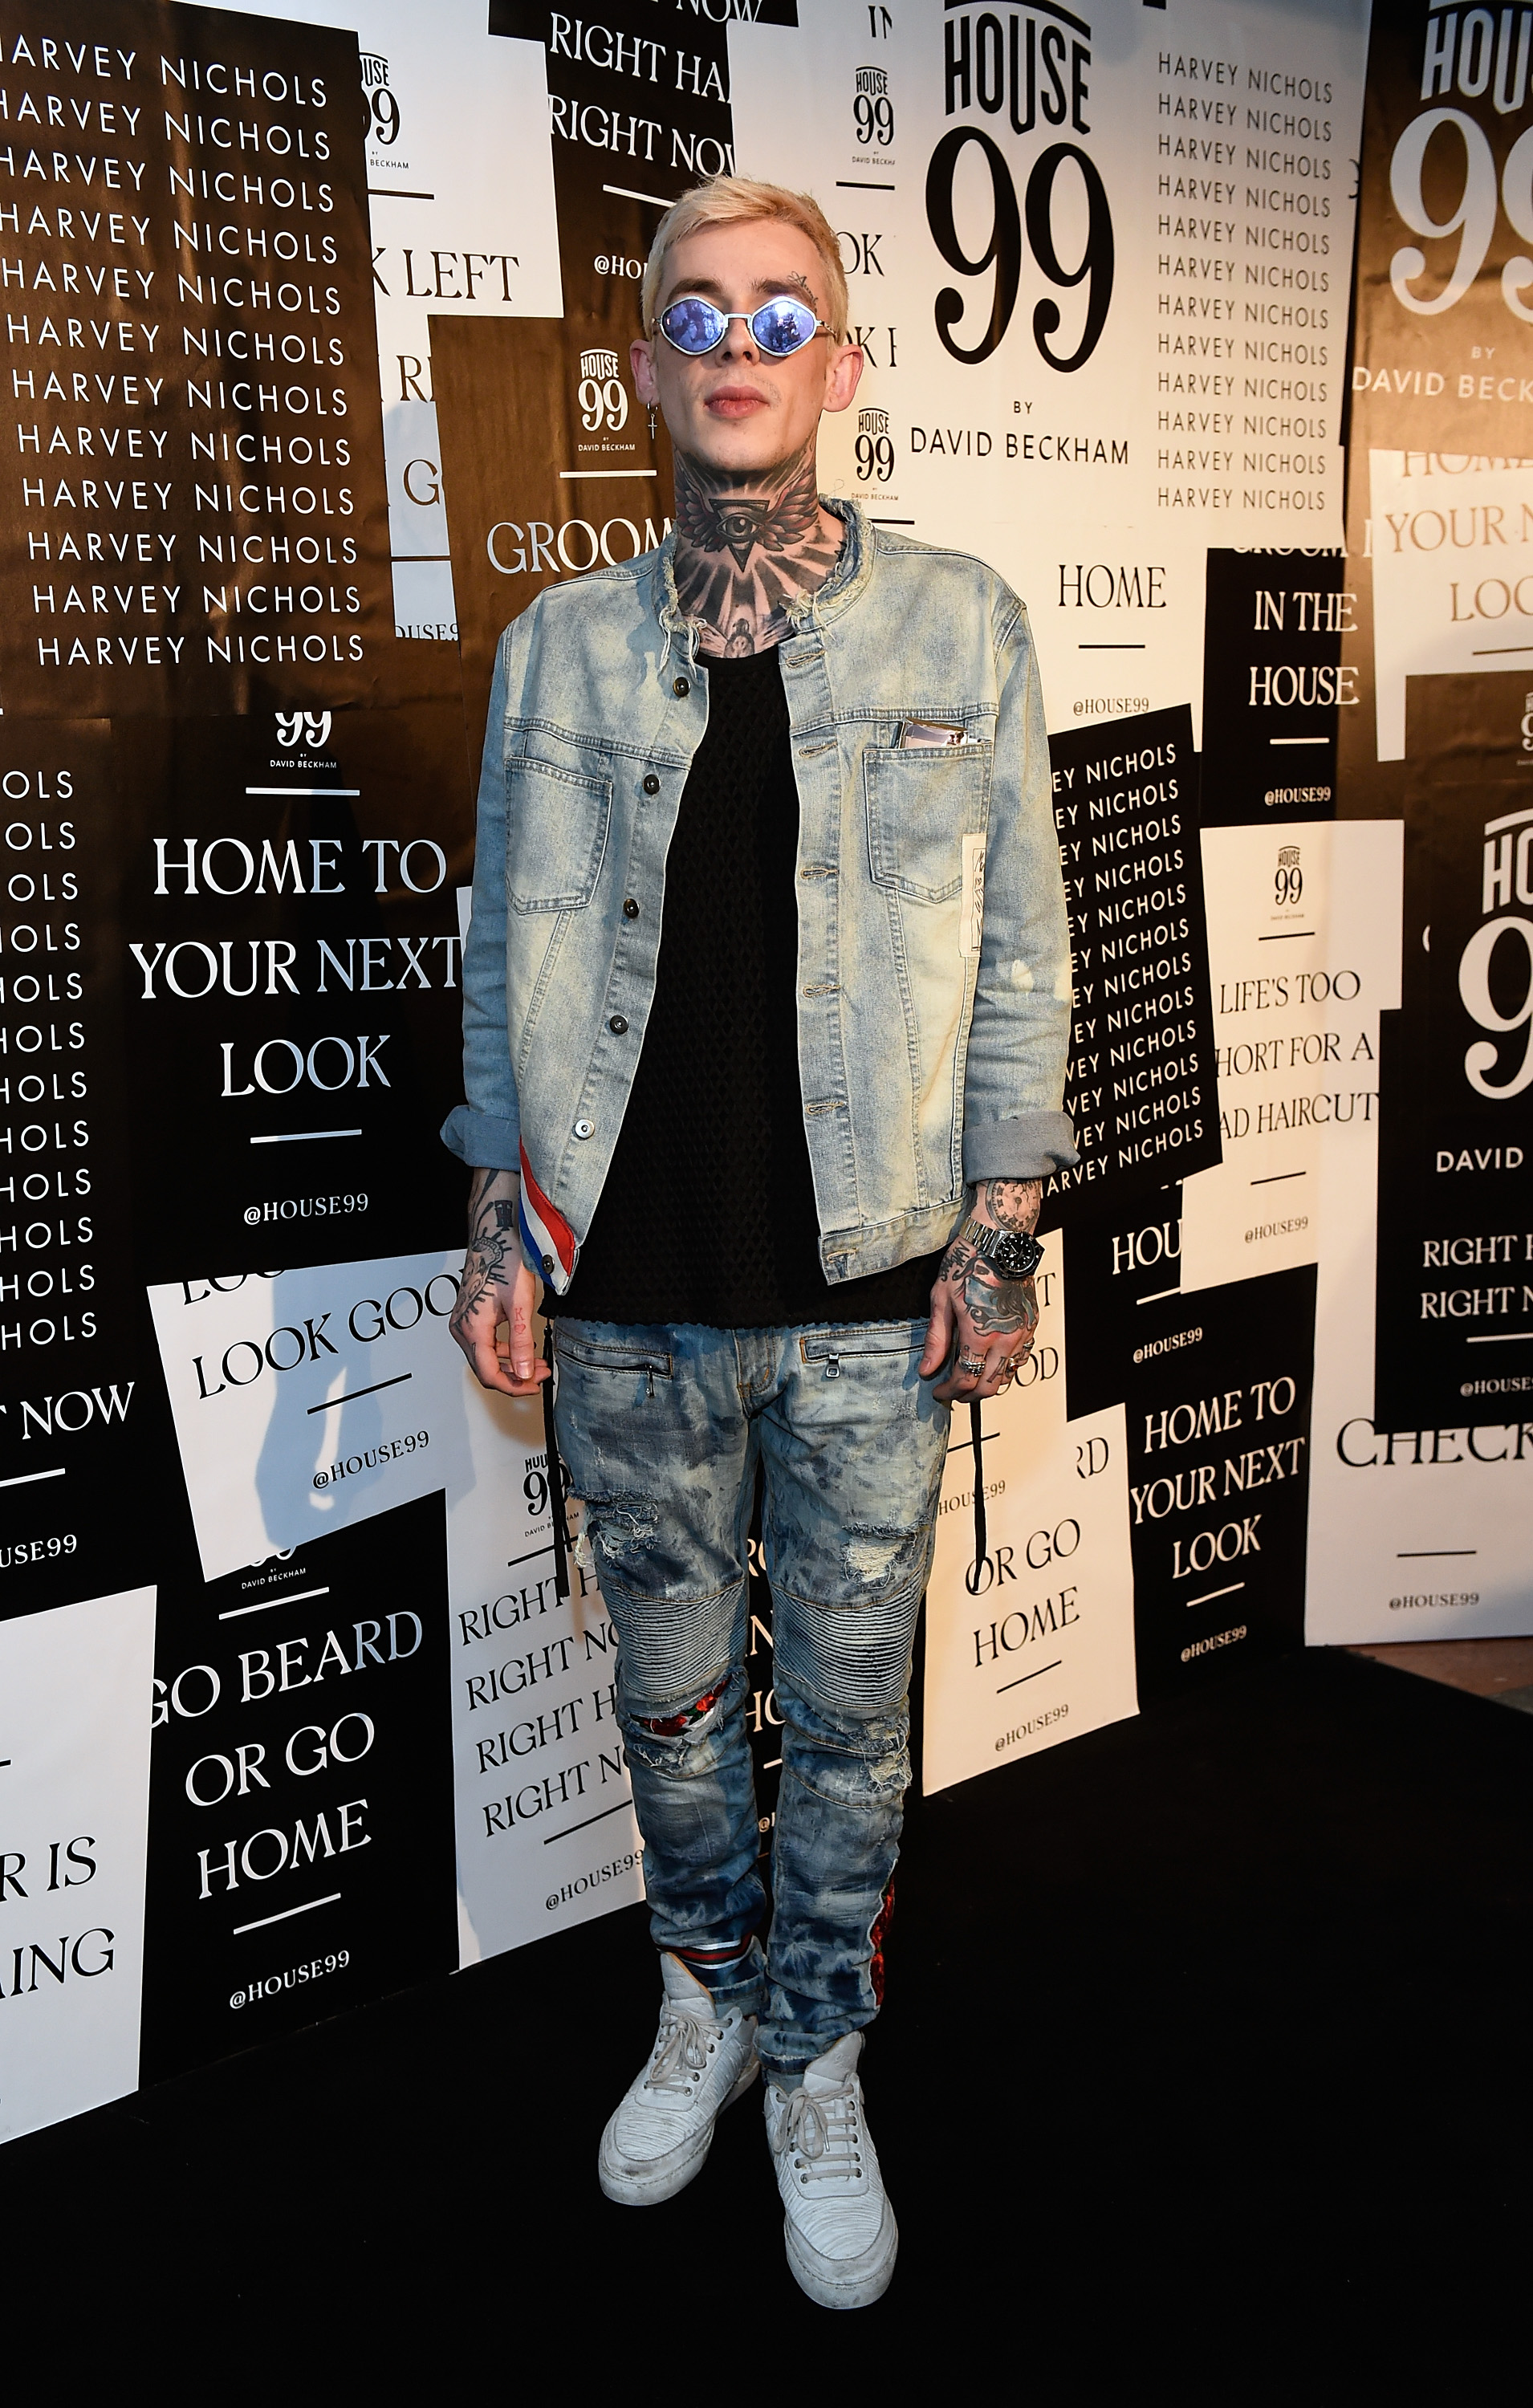 DMB-House 99 brand launch at Harvey Nichols22.JPG